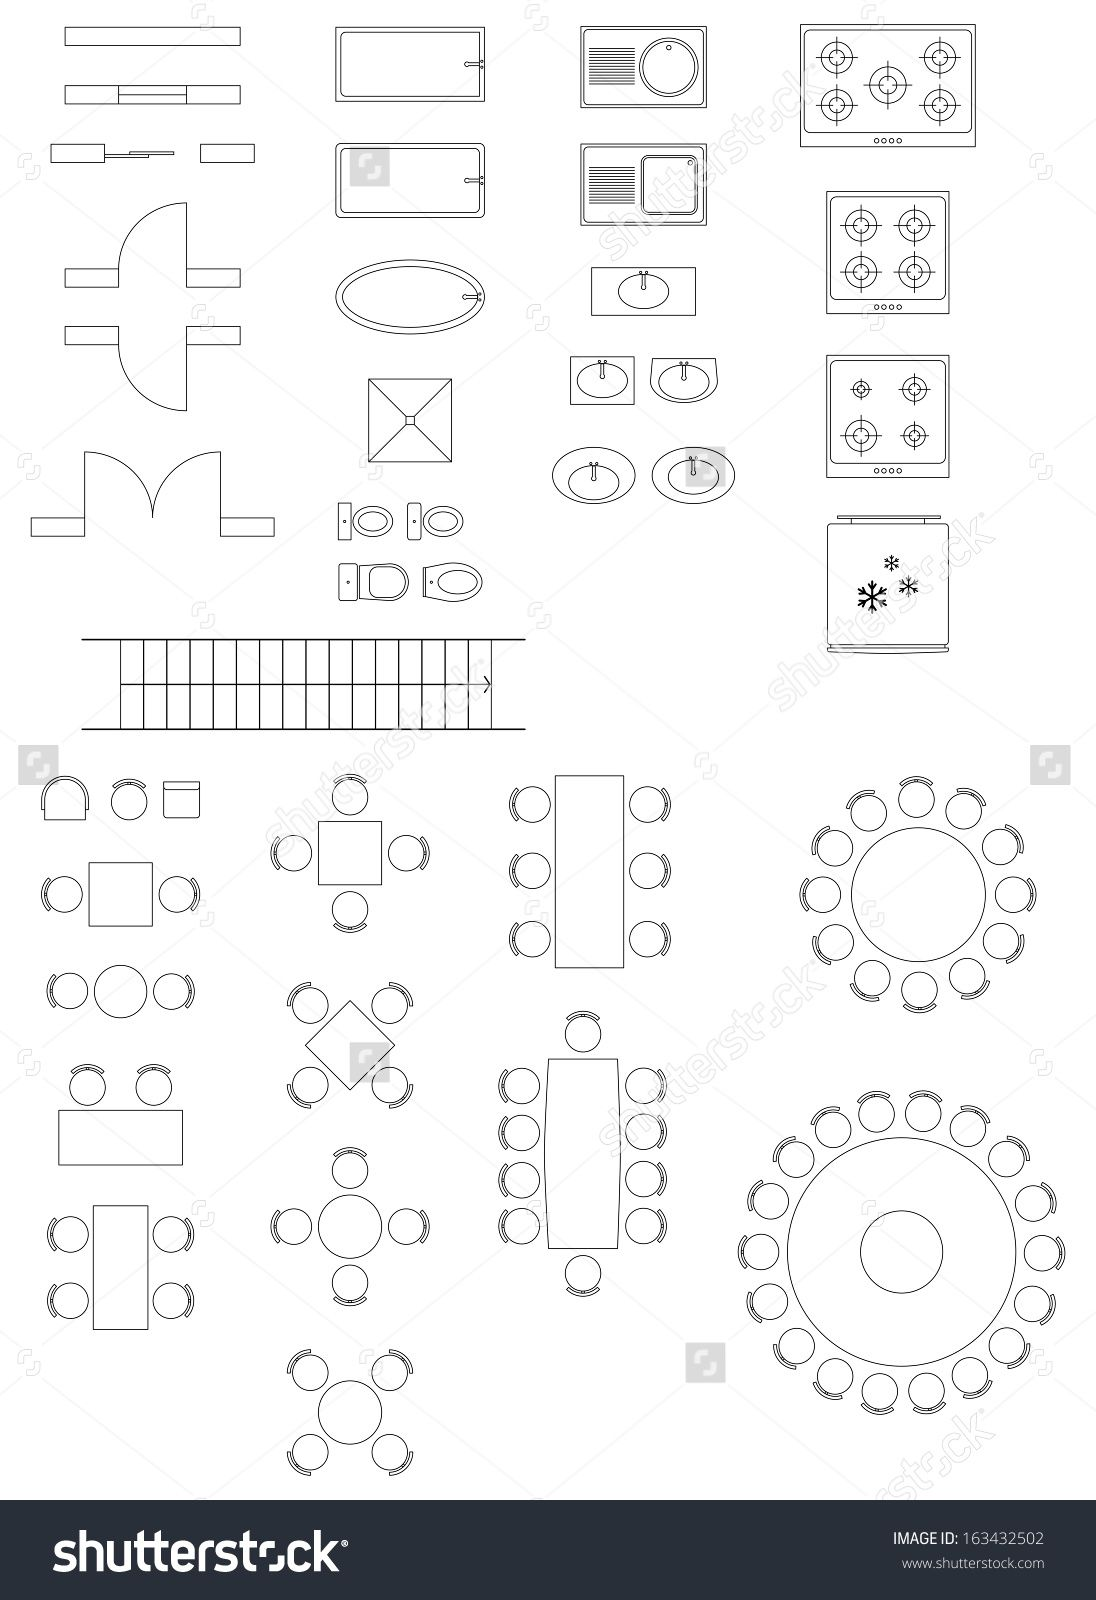 Stock Vector Standard Symbols Used In Architecture Plans Icons Set